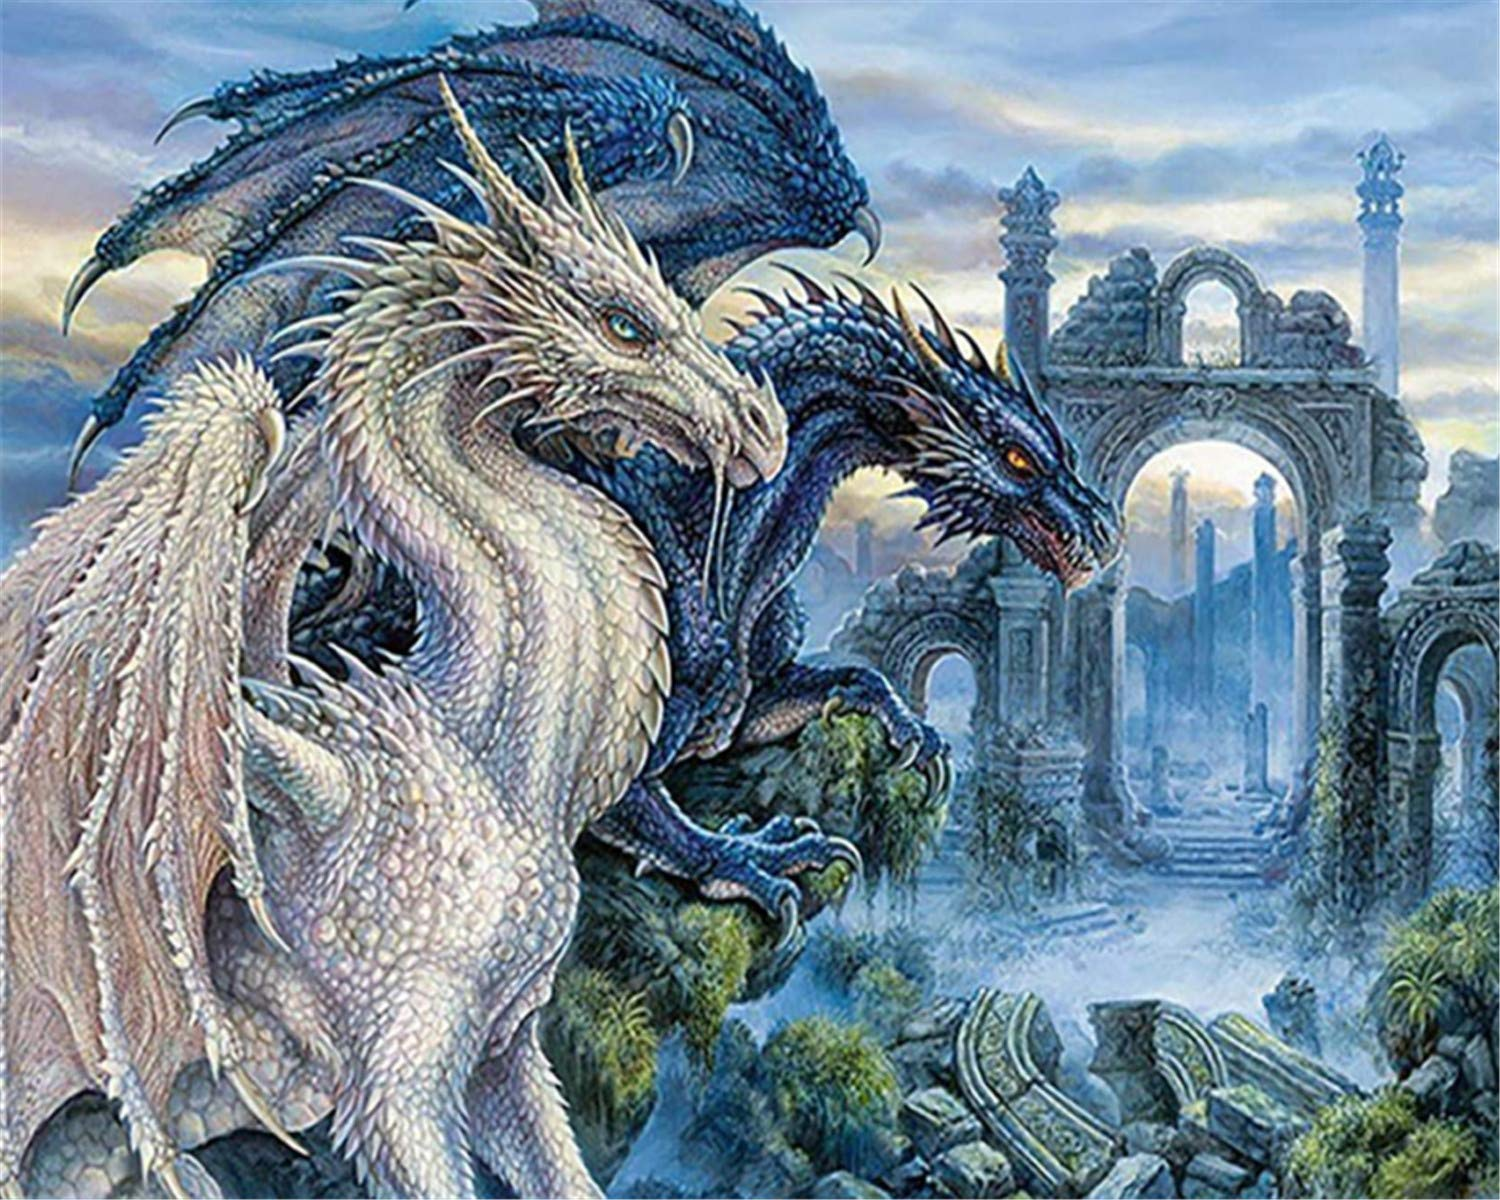 EOBROMD DIY 5D Diamond Painting by Number Kits, Crystal Rhinestone Embroidery Paint with Diamonds, Full Drill Canvas Art Picture for Home Wall Decor, Dragons 12x16